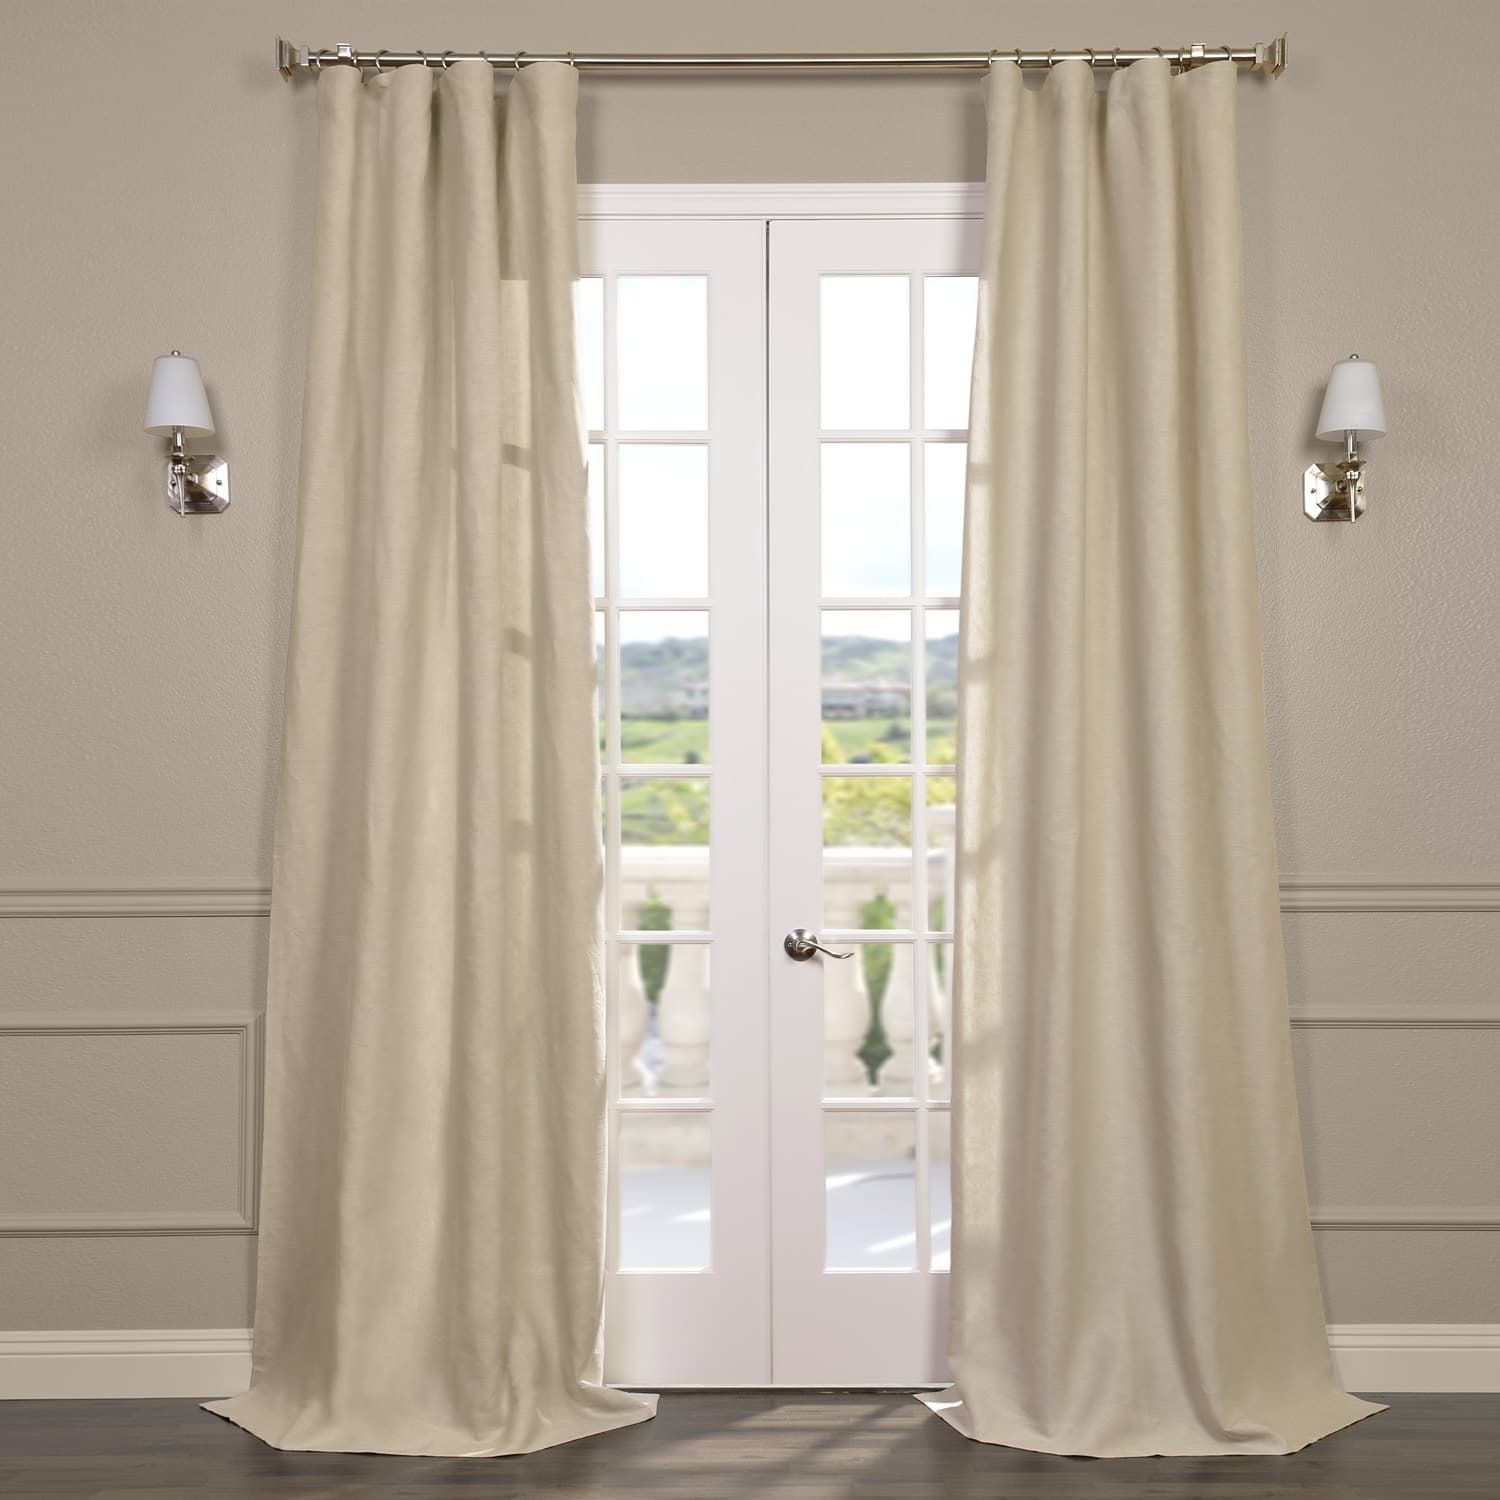 Exclusive Fabrics Signature French Linen Curtain Panel (84 With Regard To Signature French Linen Curtain Panels (View 9 of 30)